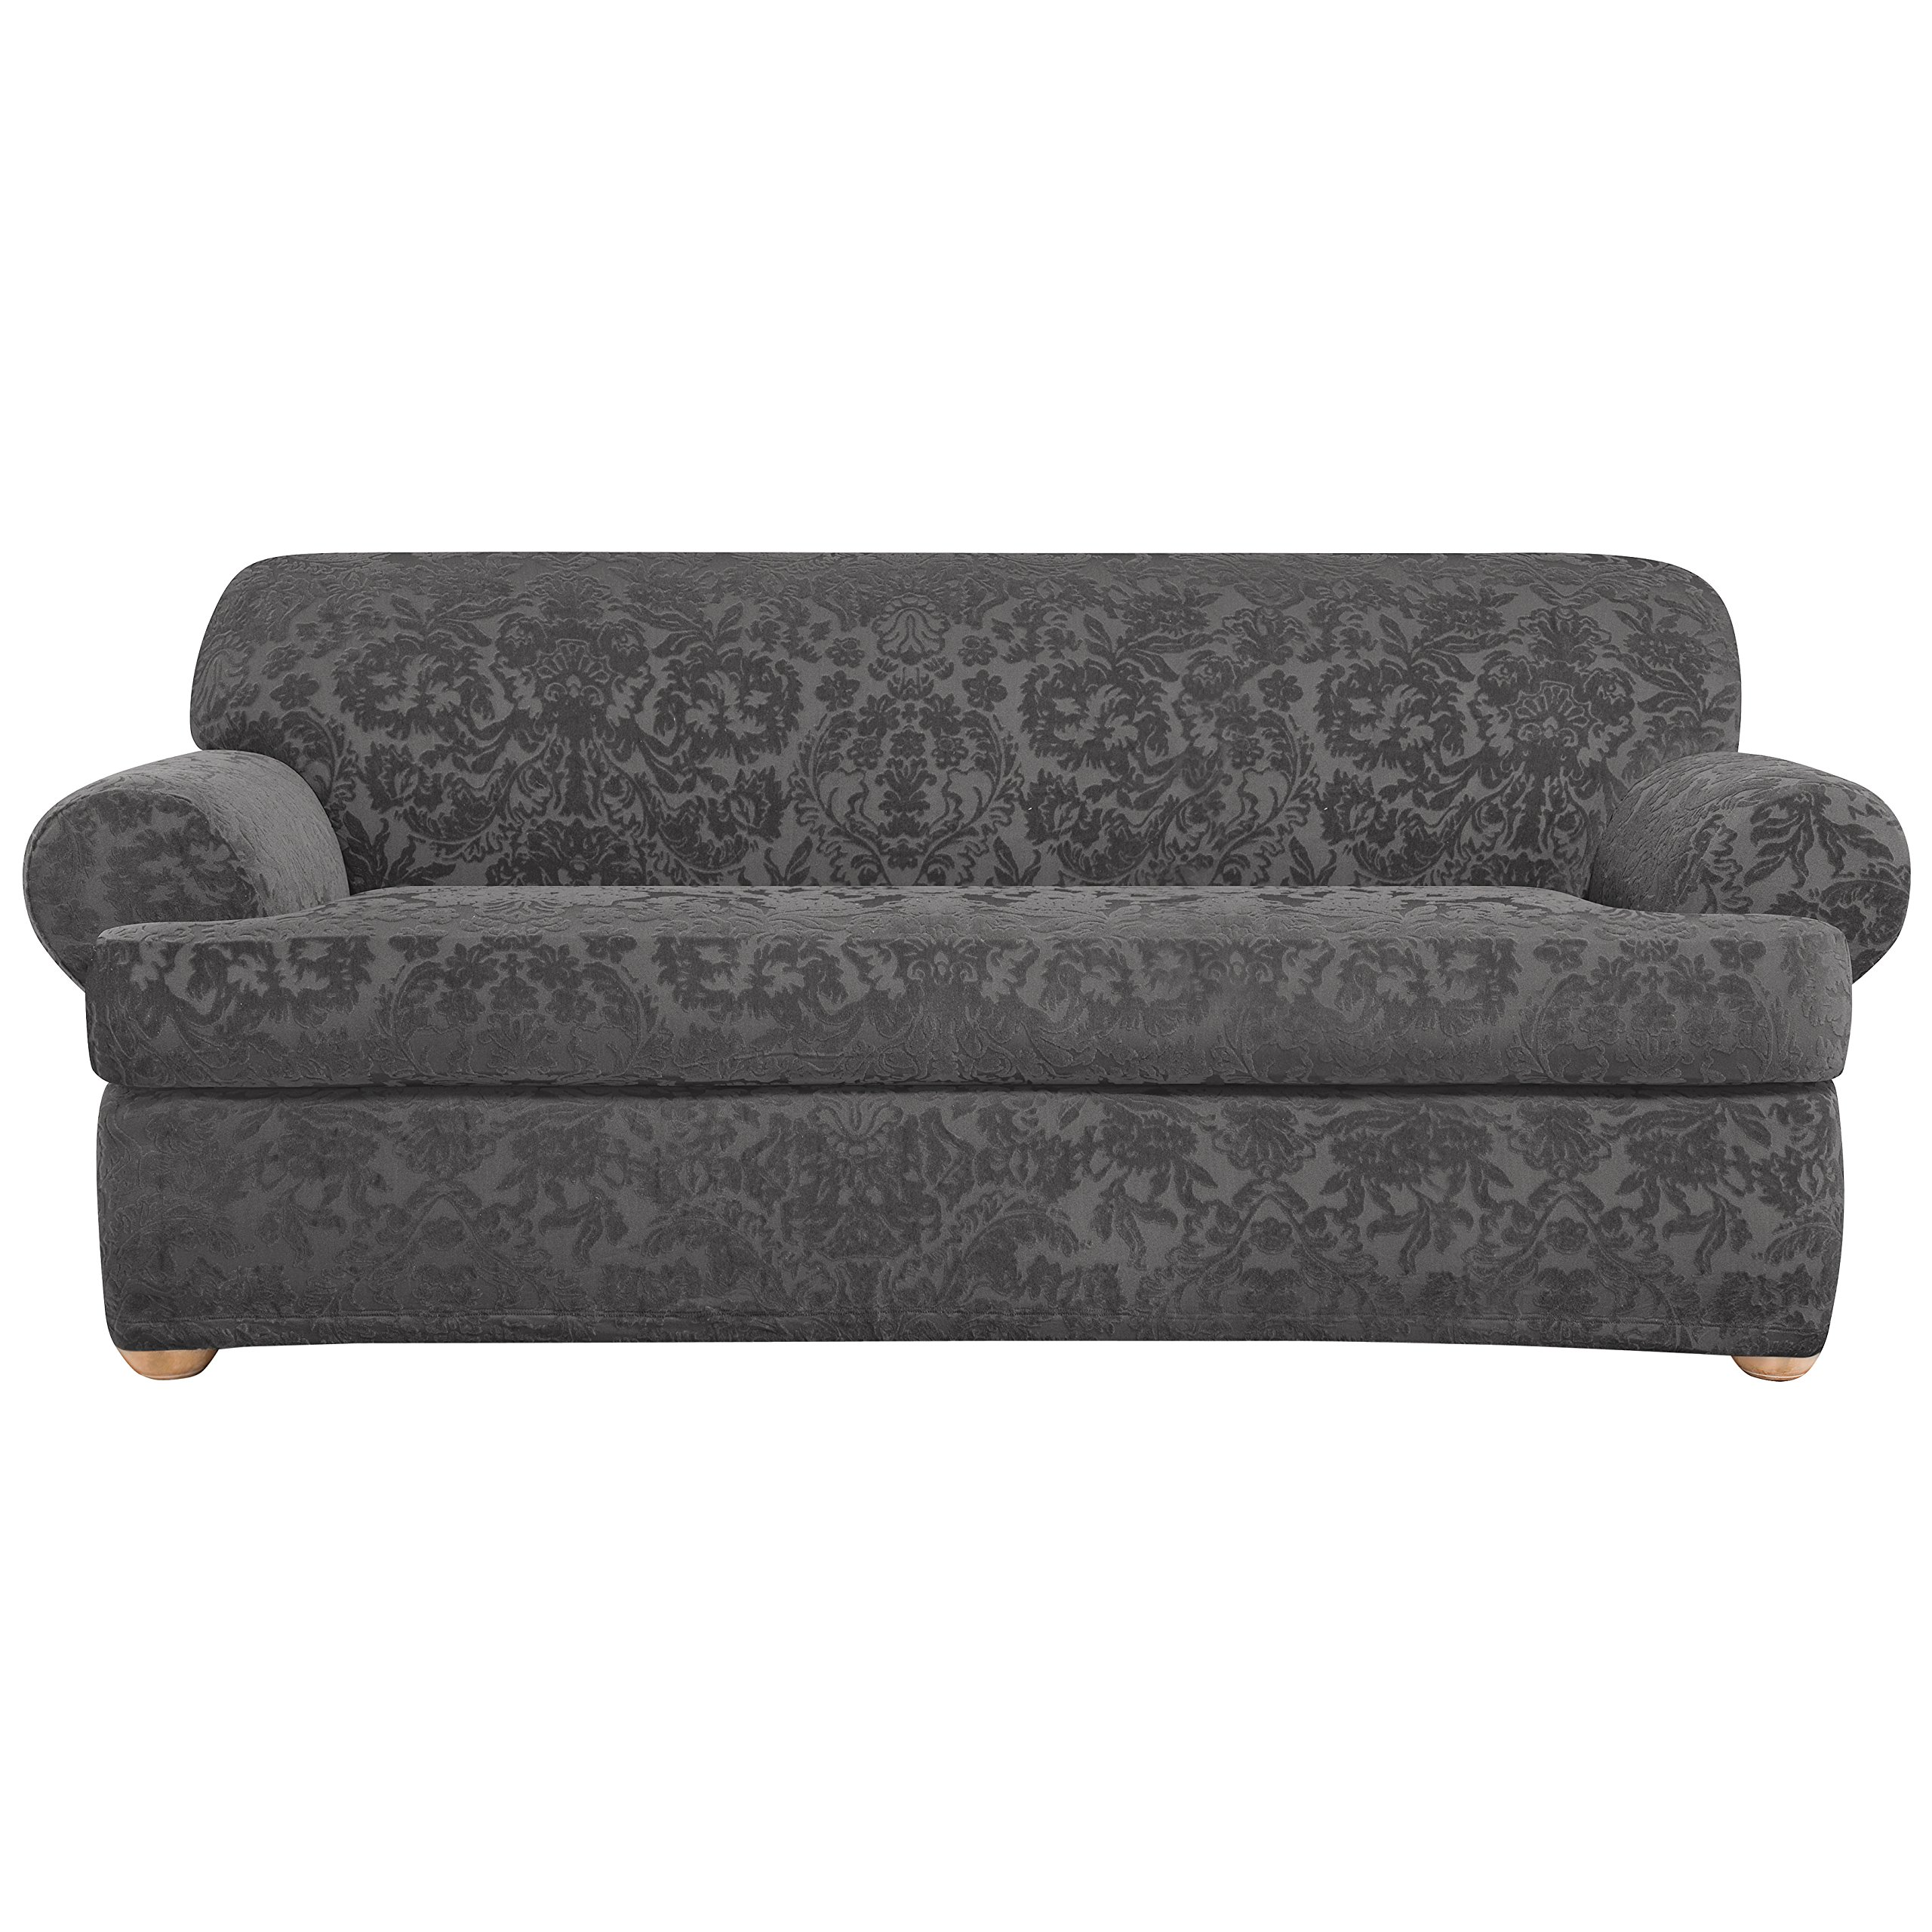 Sure Fit Stretch  Jacquard Damask 2-Piece - Sofa Slipcover  - Gray (SF41460) by Surefit